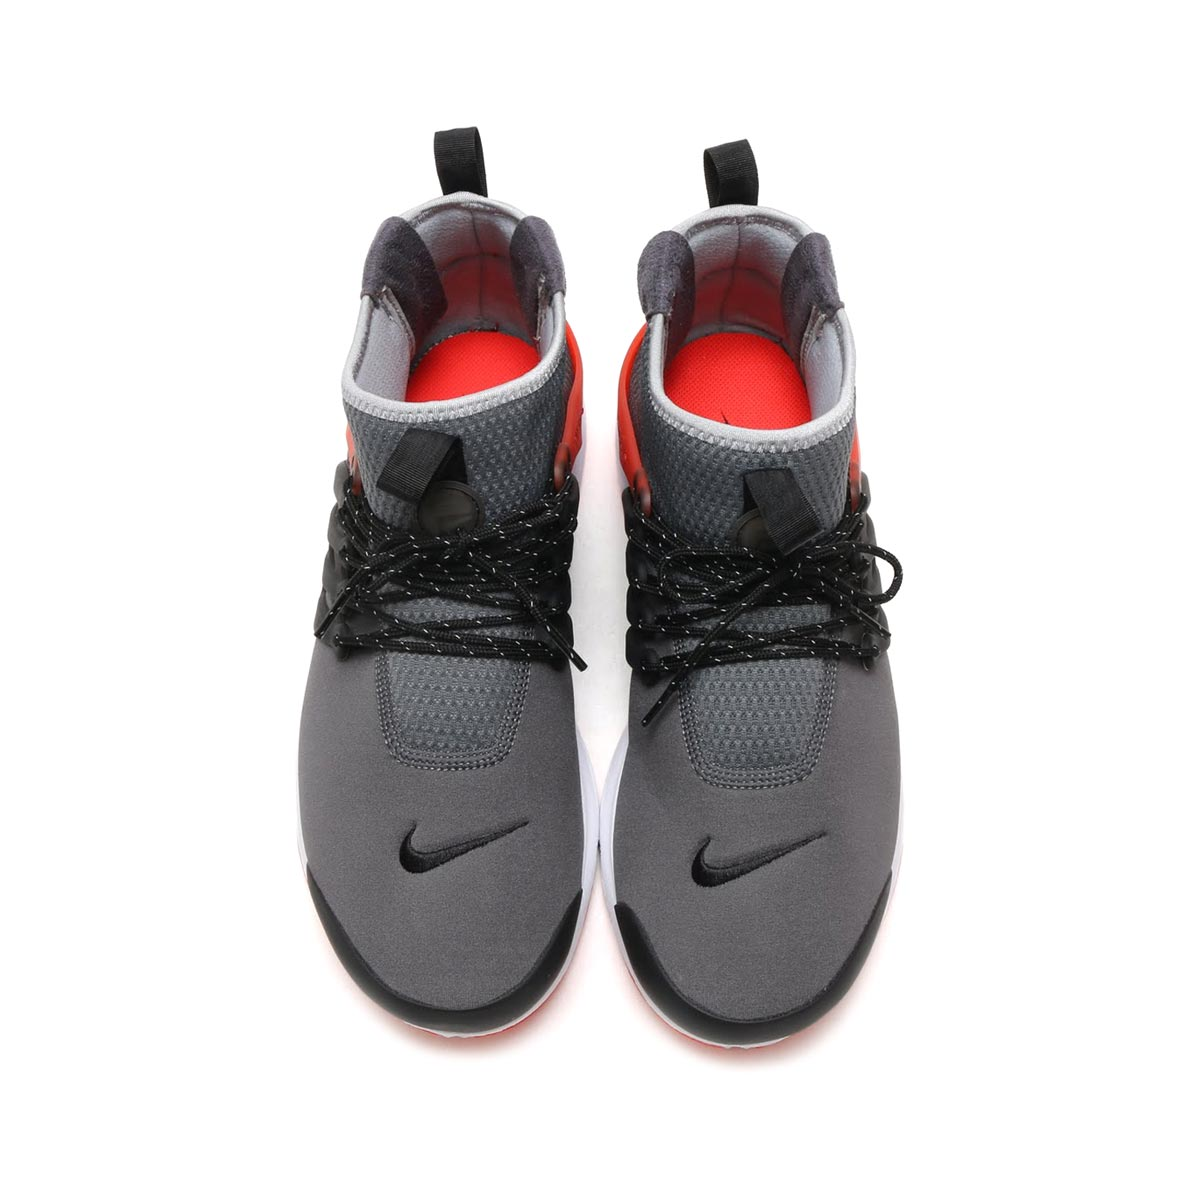 new styles f40d7 dc939 When Nike created the Nike Air Presto Mid Utility, they had Winter season  in mind. With Spring right around the corner, they modified the model to  make it ...